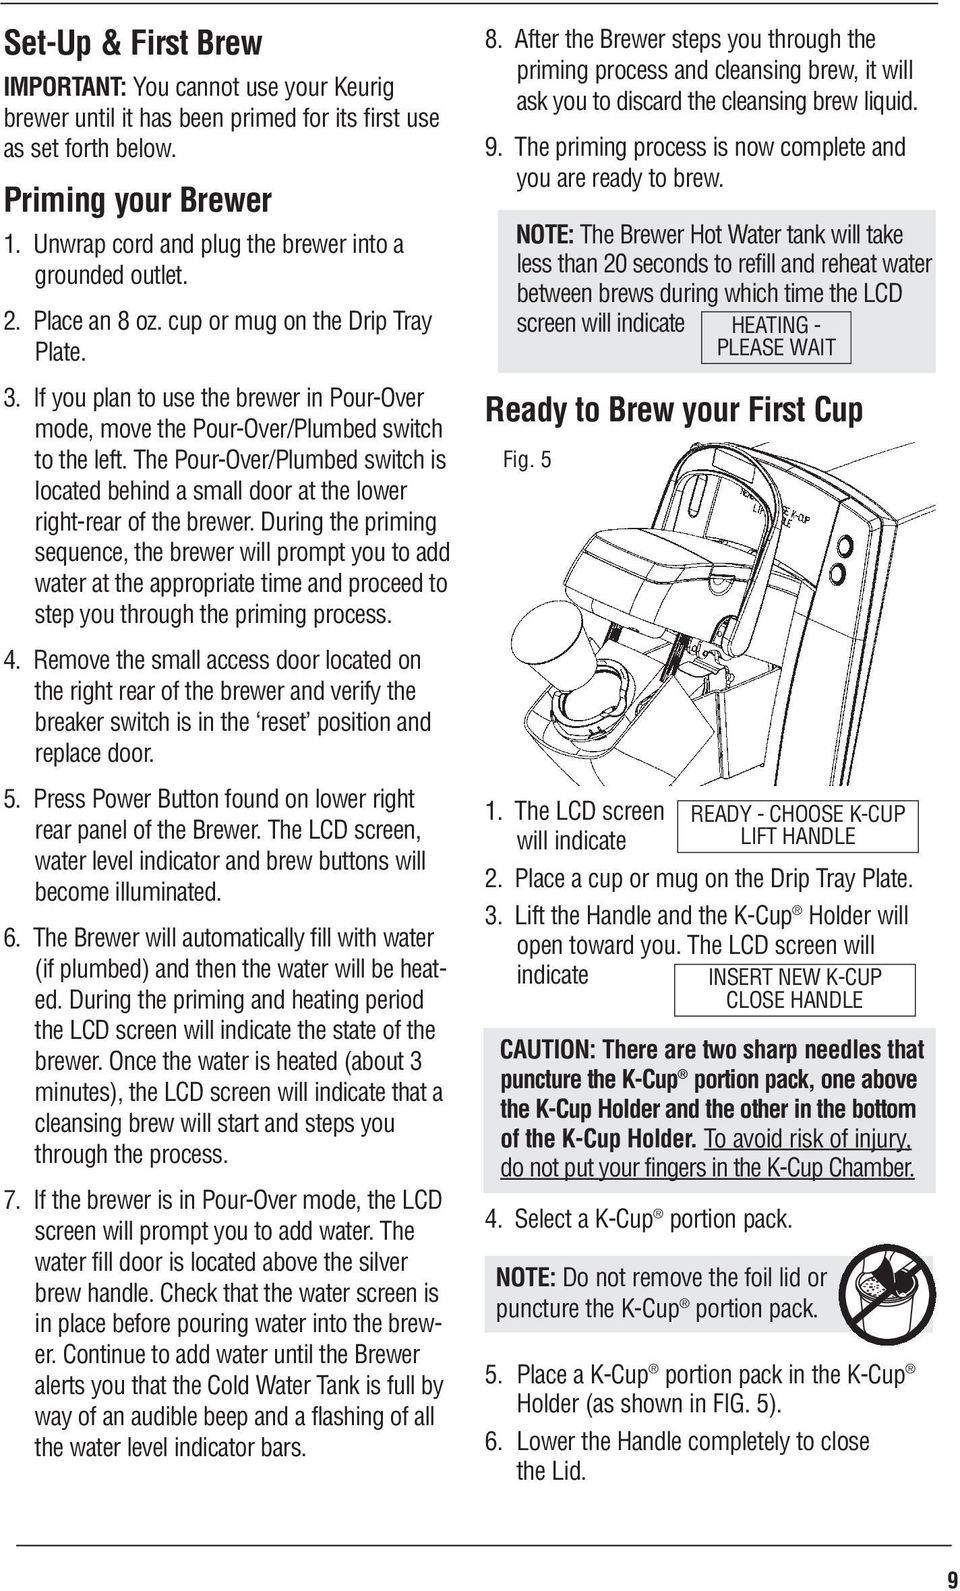 If you plan to use the brewer in Pour-Over mode, move the Pour-Over/Plumbed switch to the left. The Pour-Over/Plumbed switch is located behind a small door at the lower right-rear of the brewer.